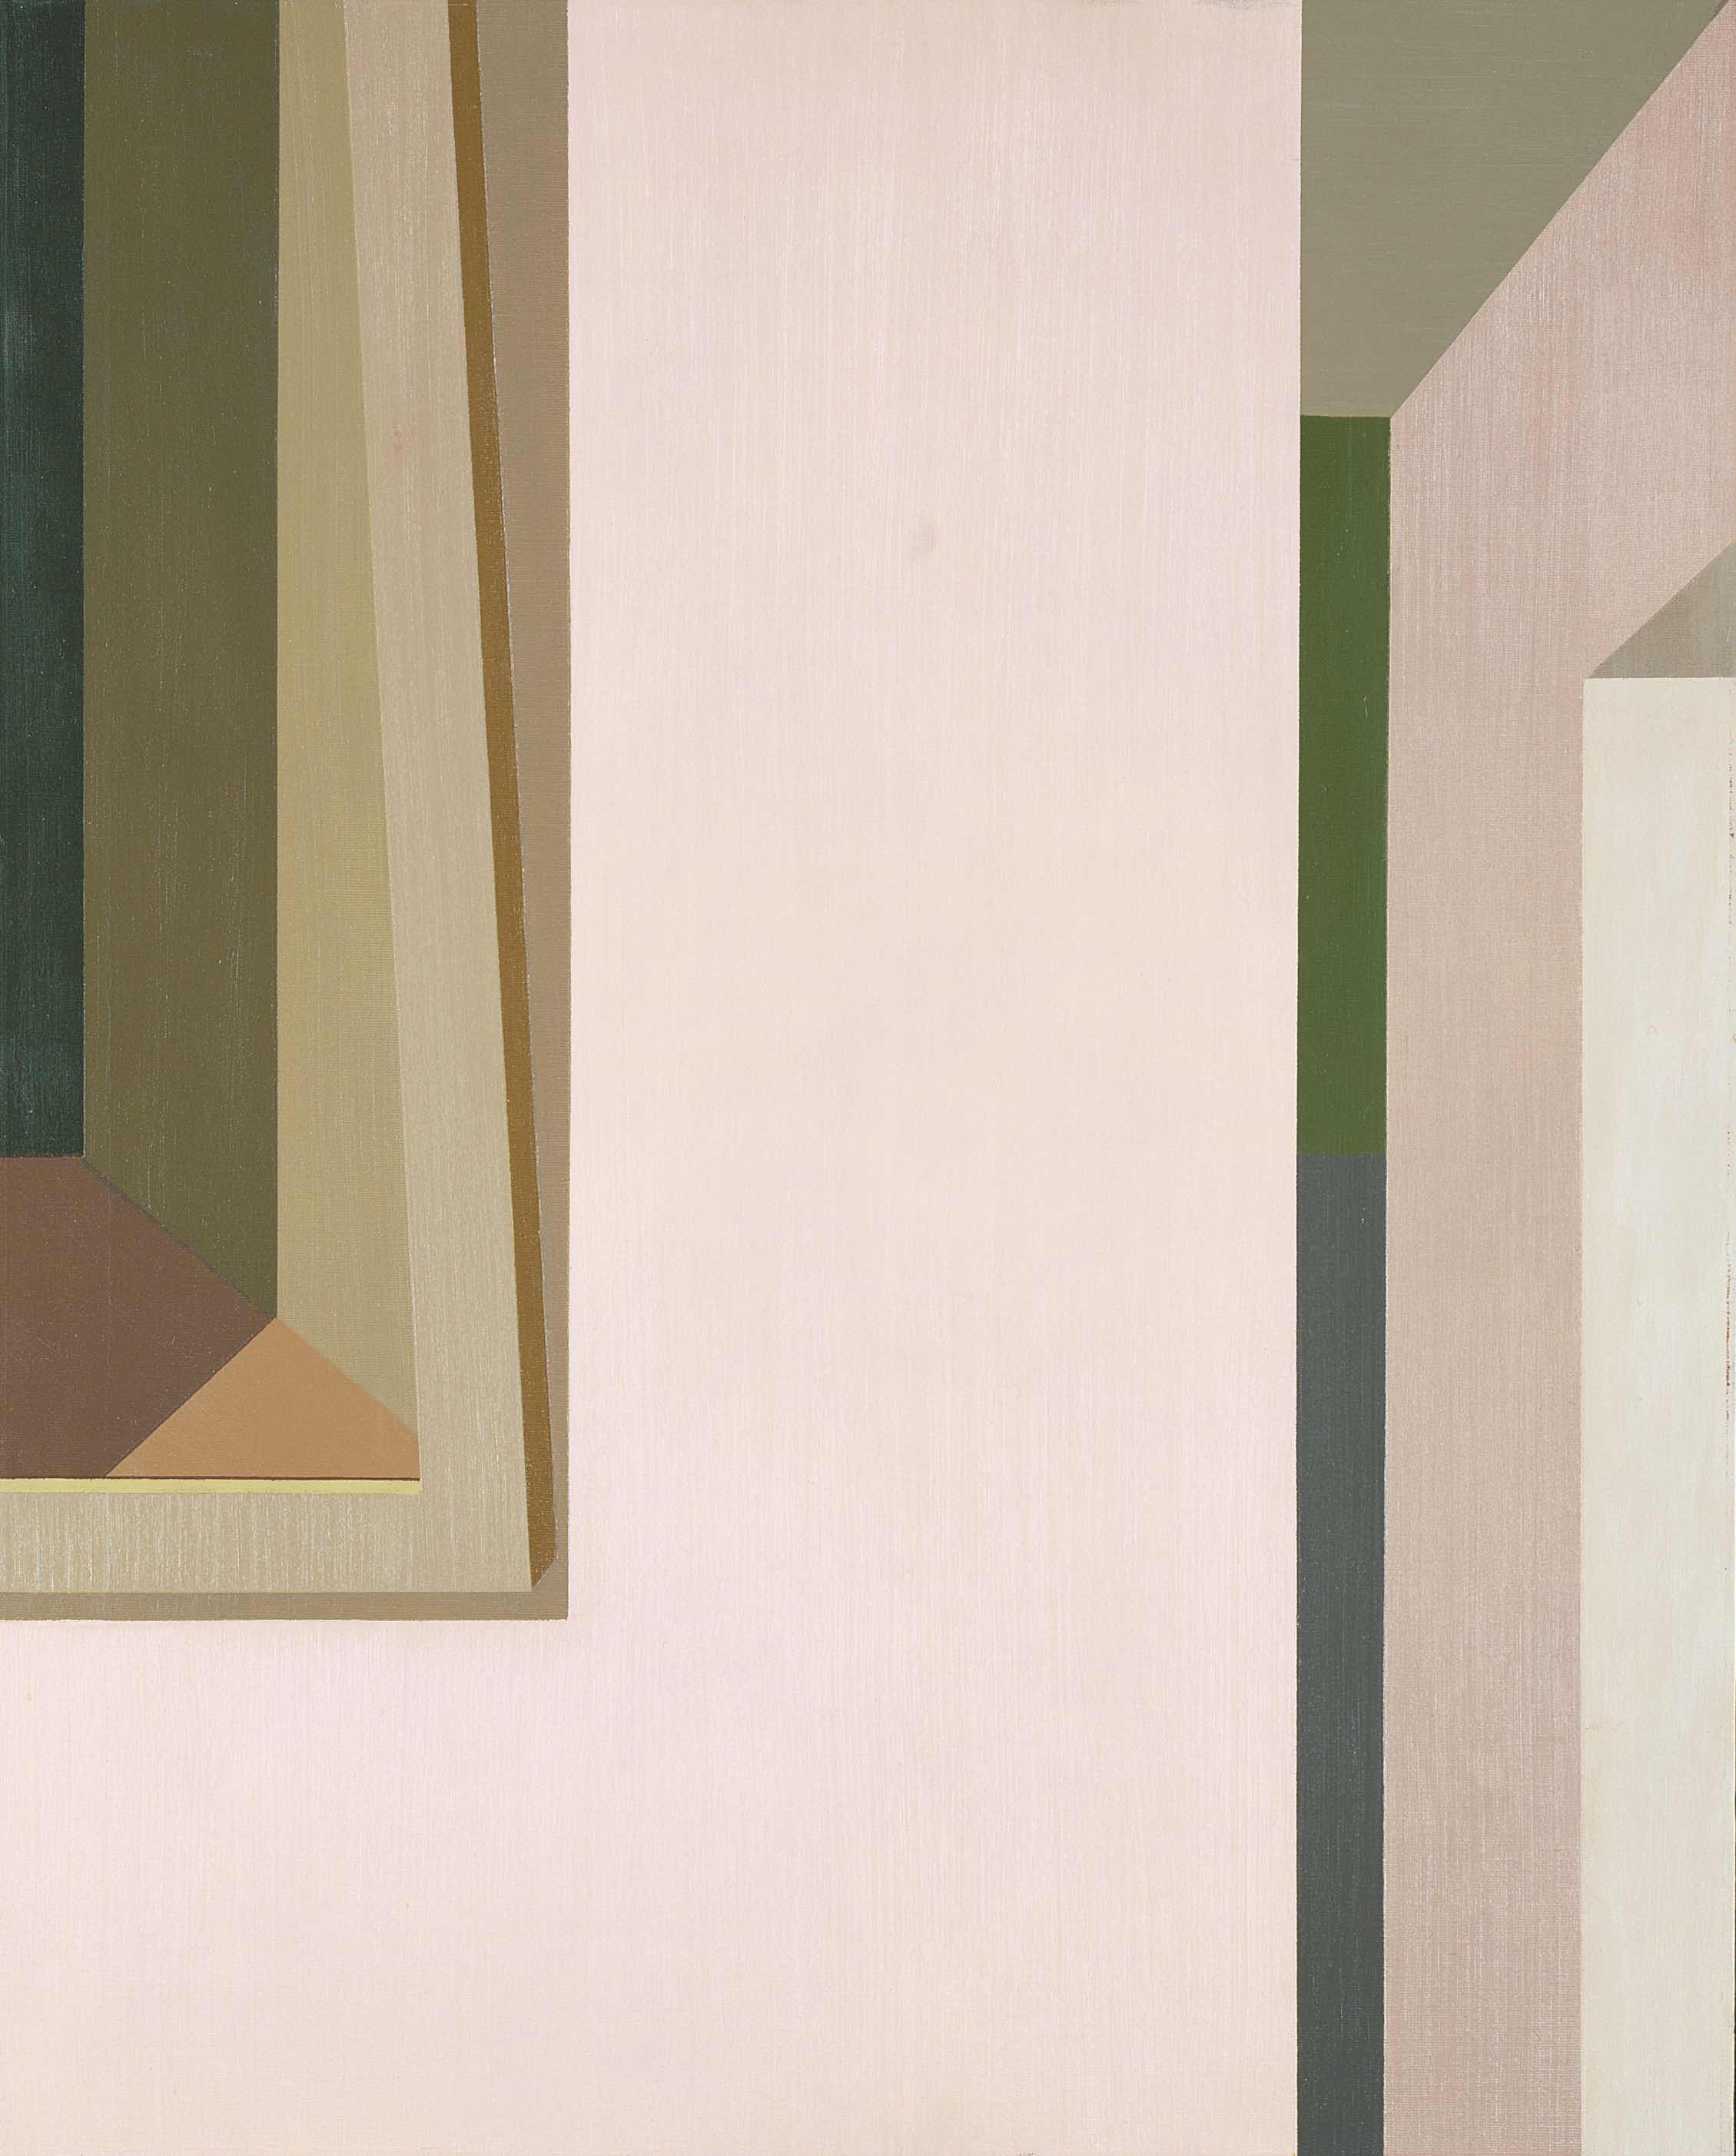 Untitled (Interior with Doorway) , 1962  oil on canvas 30 x 24 inches; 76.2 x 61 centimeters  $45,000